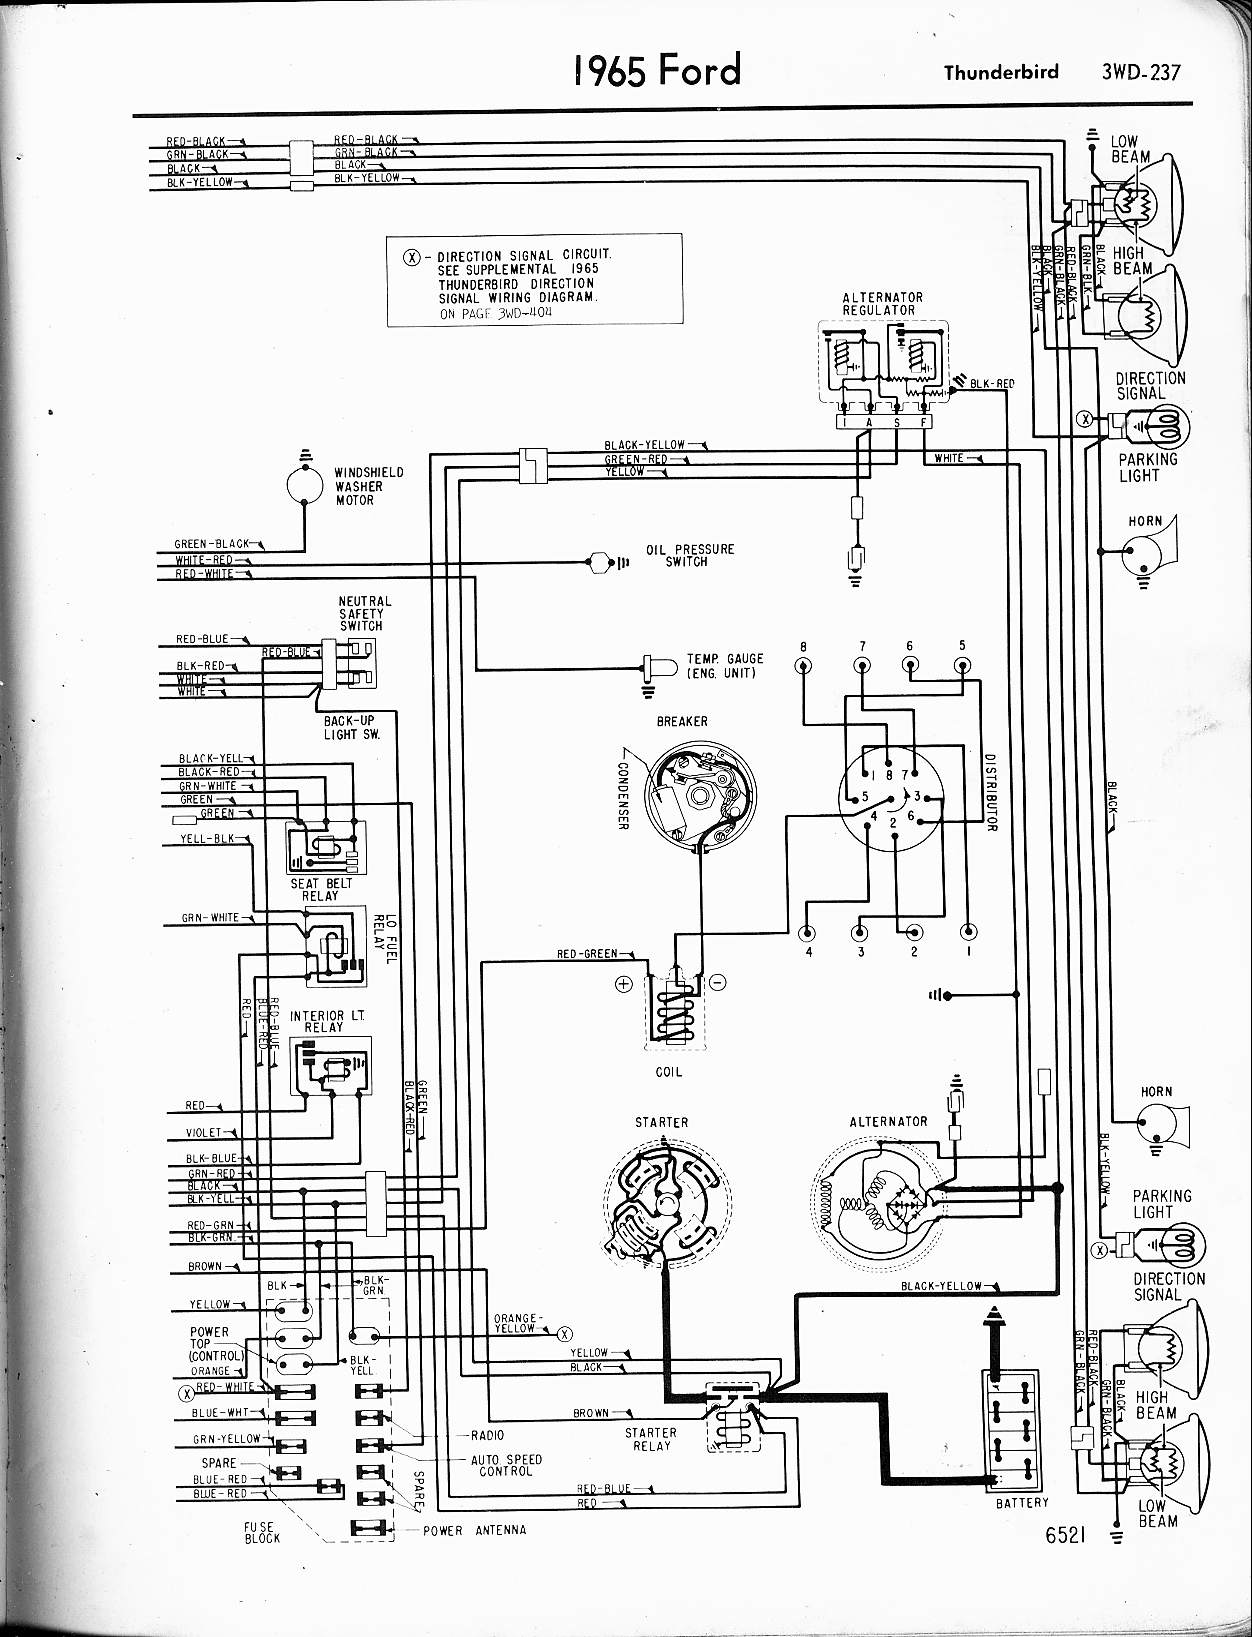 MWire5765 237 57 65 ford wiring diagrams Ford E 350 Wiring Diagrams at mr168.co